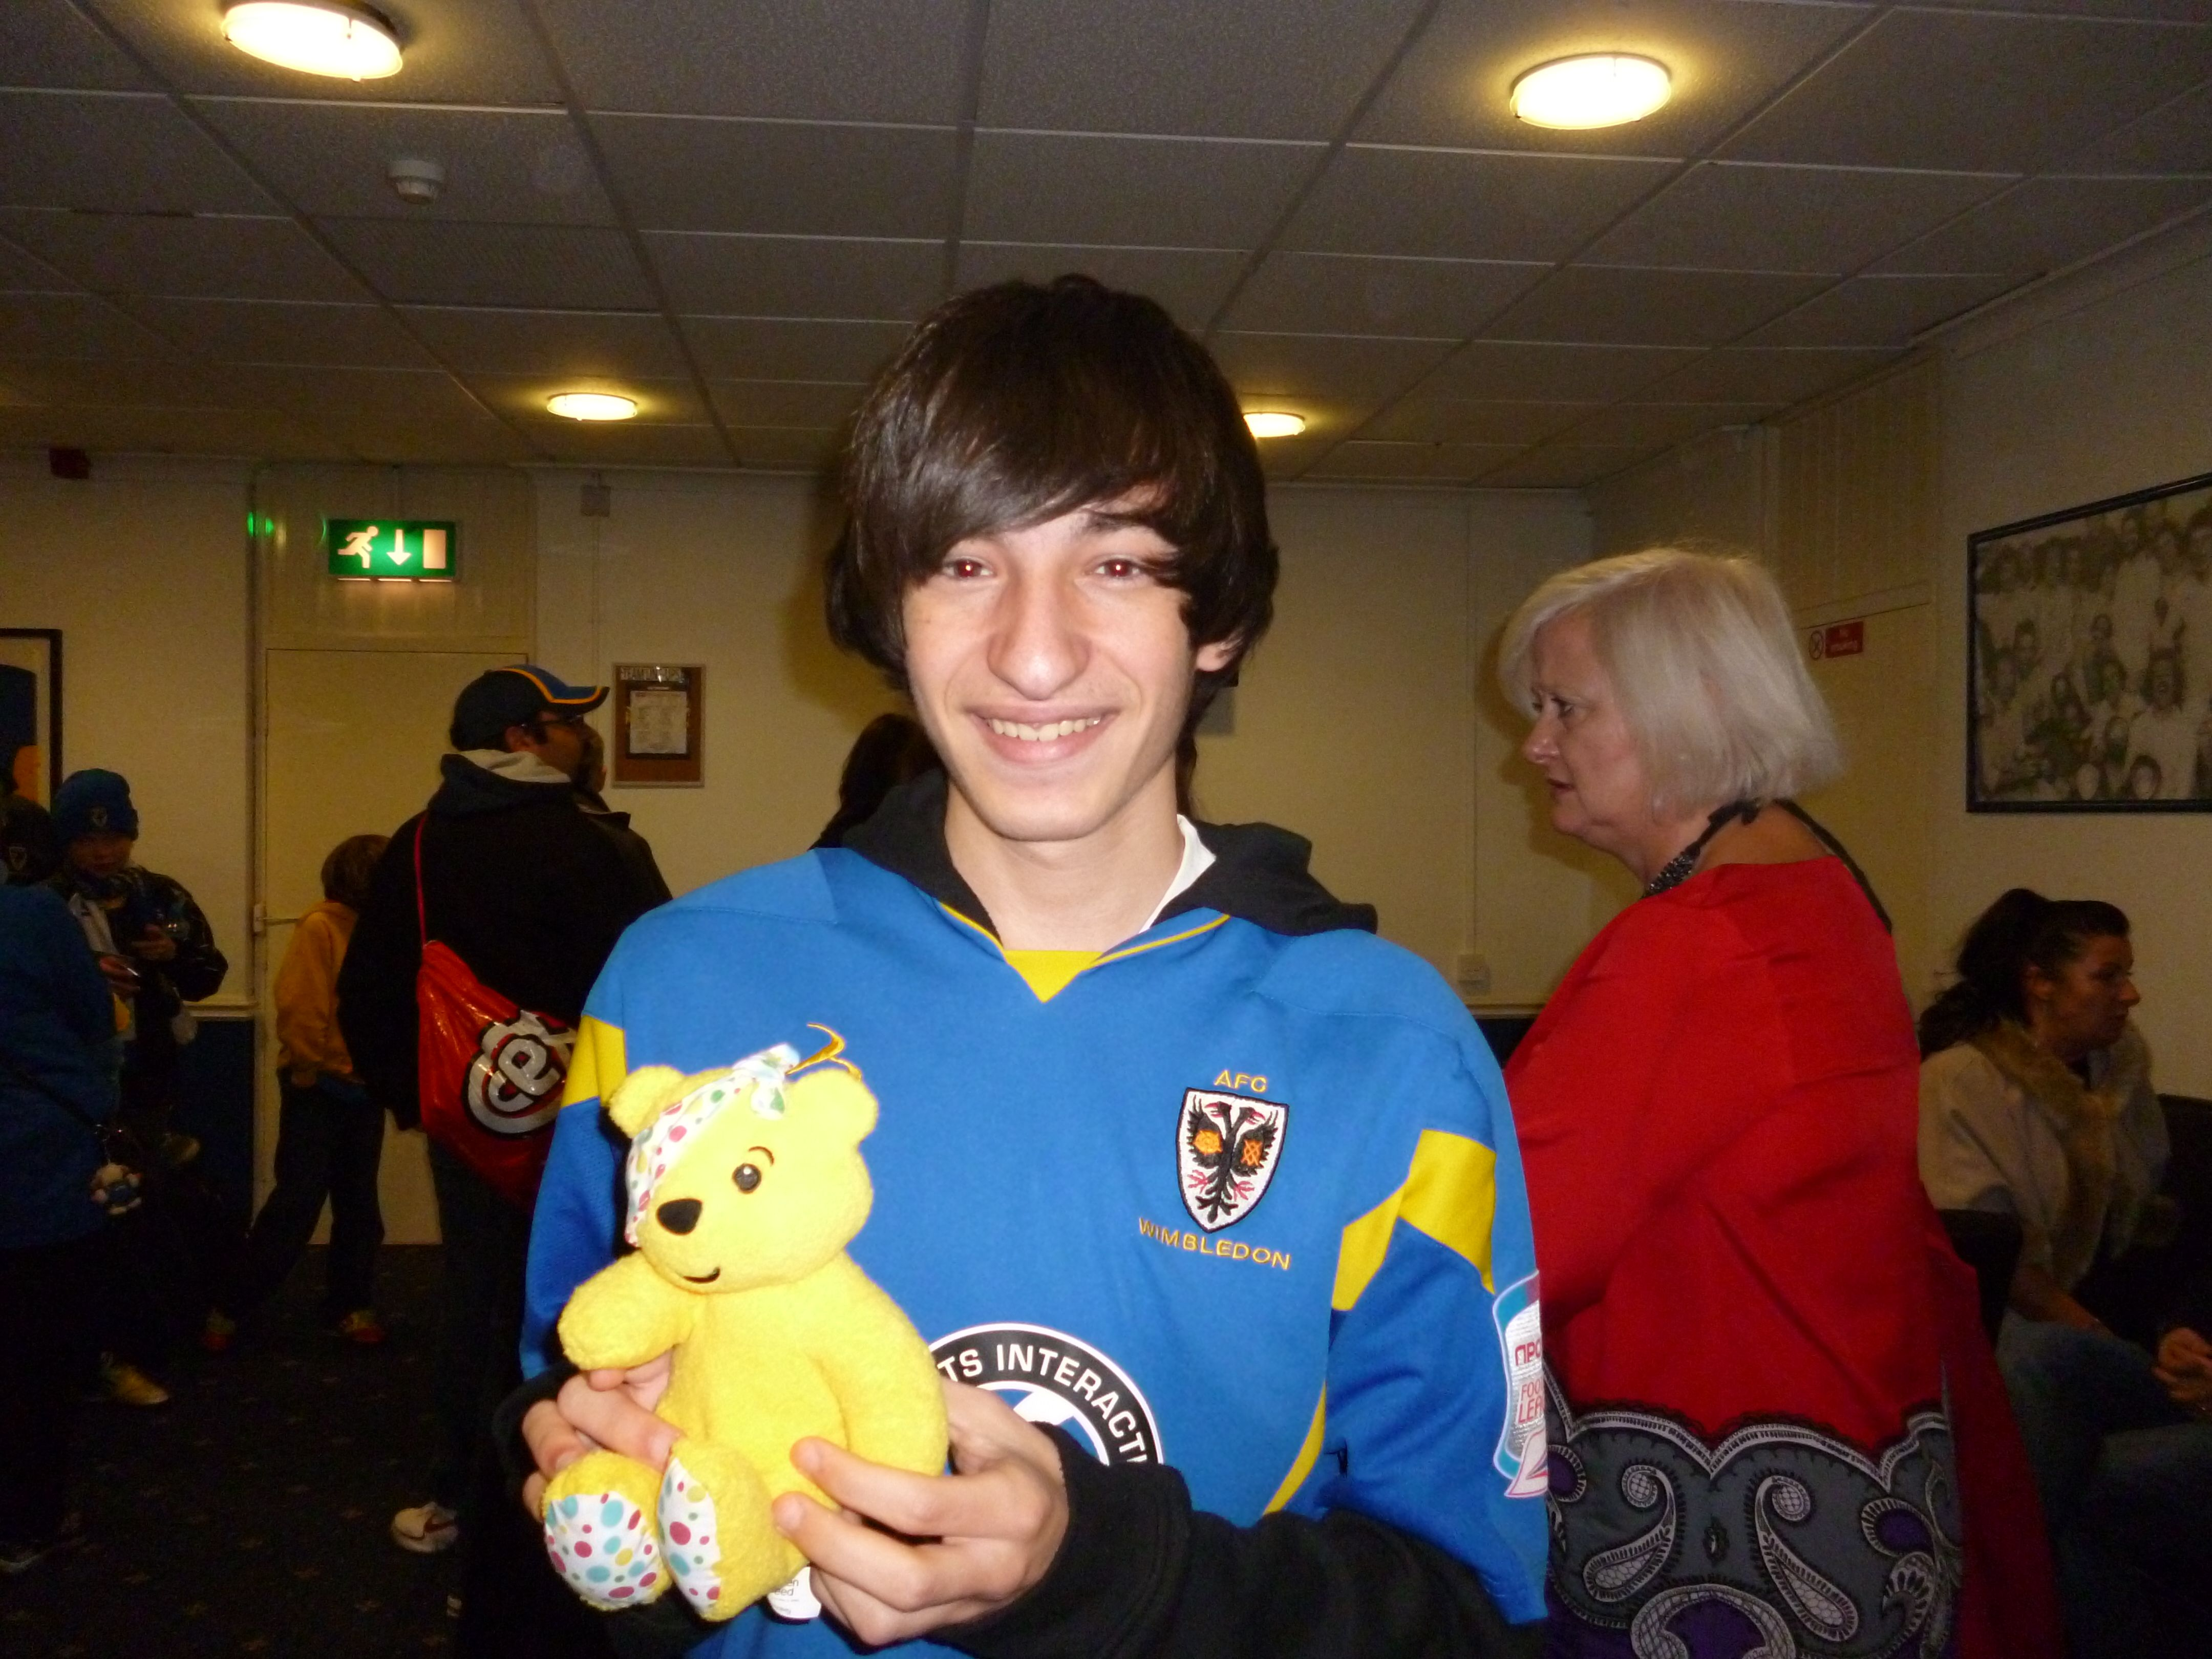 Charlie Strank, student and supporter of AFC Wimbledon supports the Paul Strank Roofing Photothon with Pudsey! #pudseyphotothon #cin #pudsey